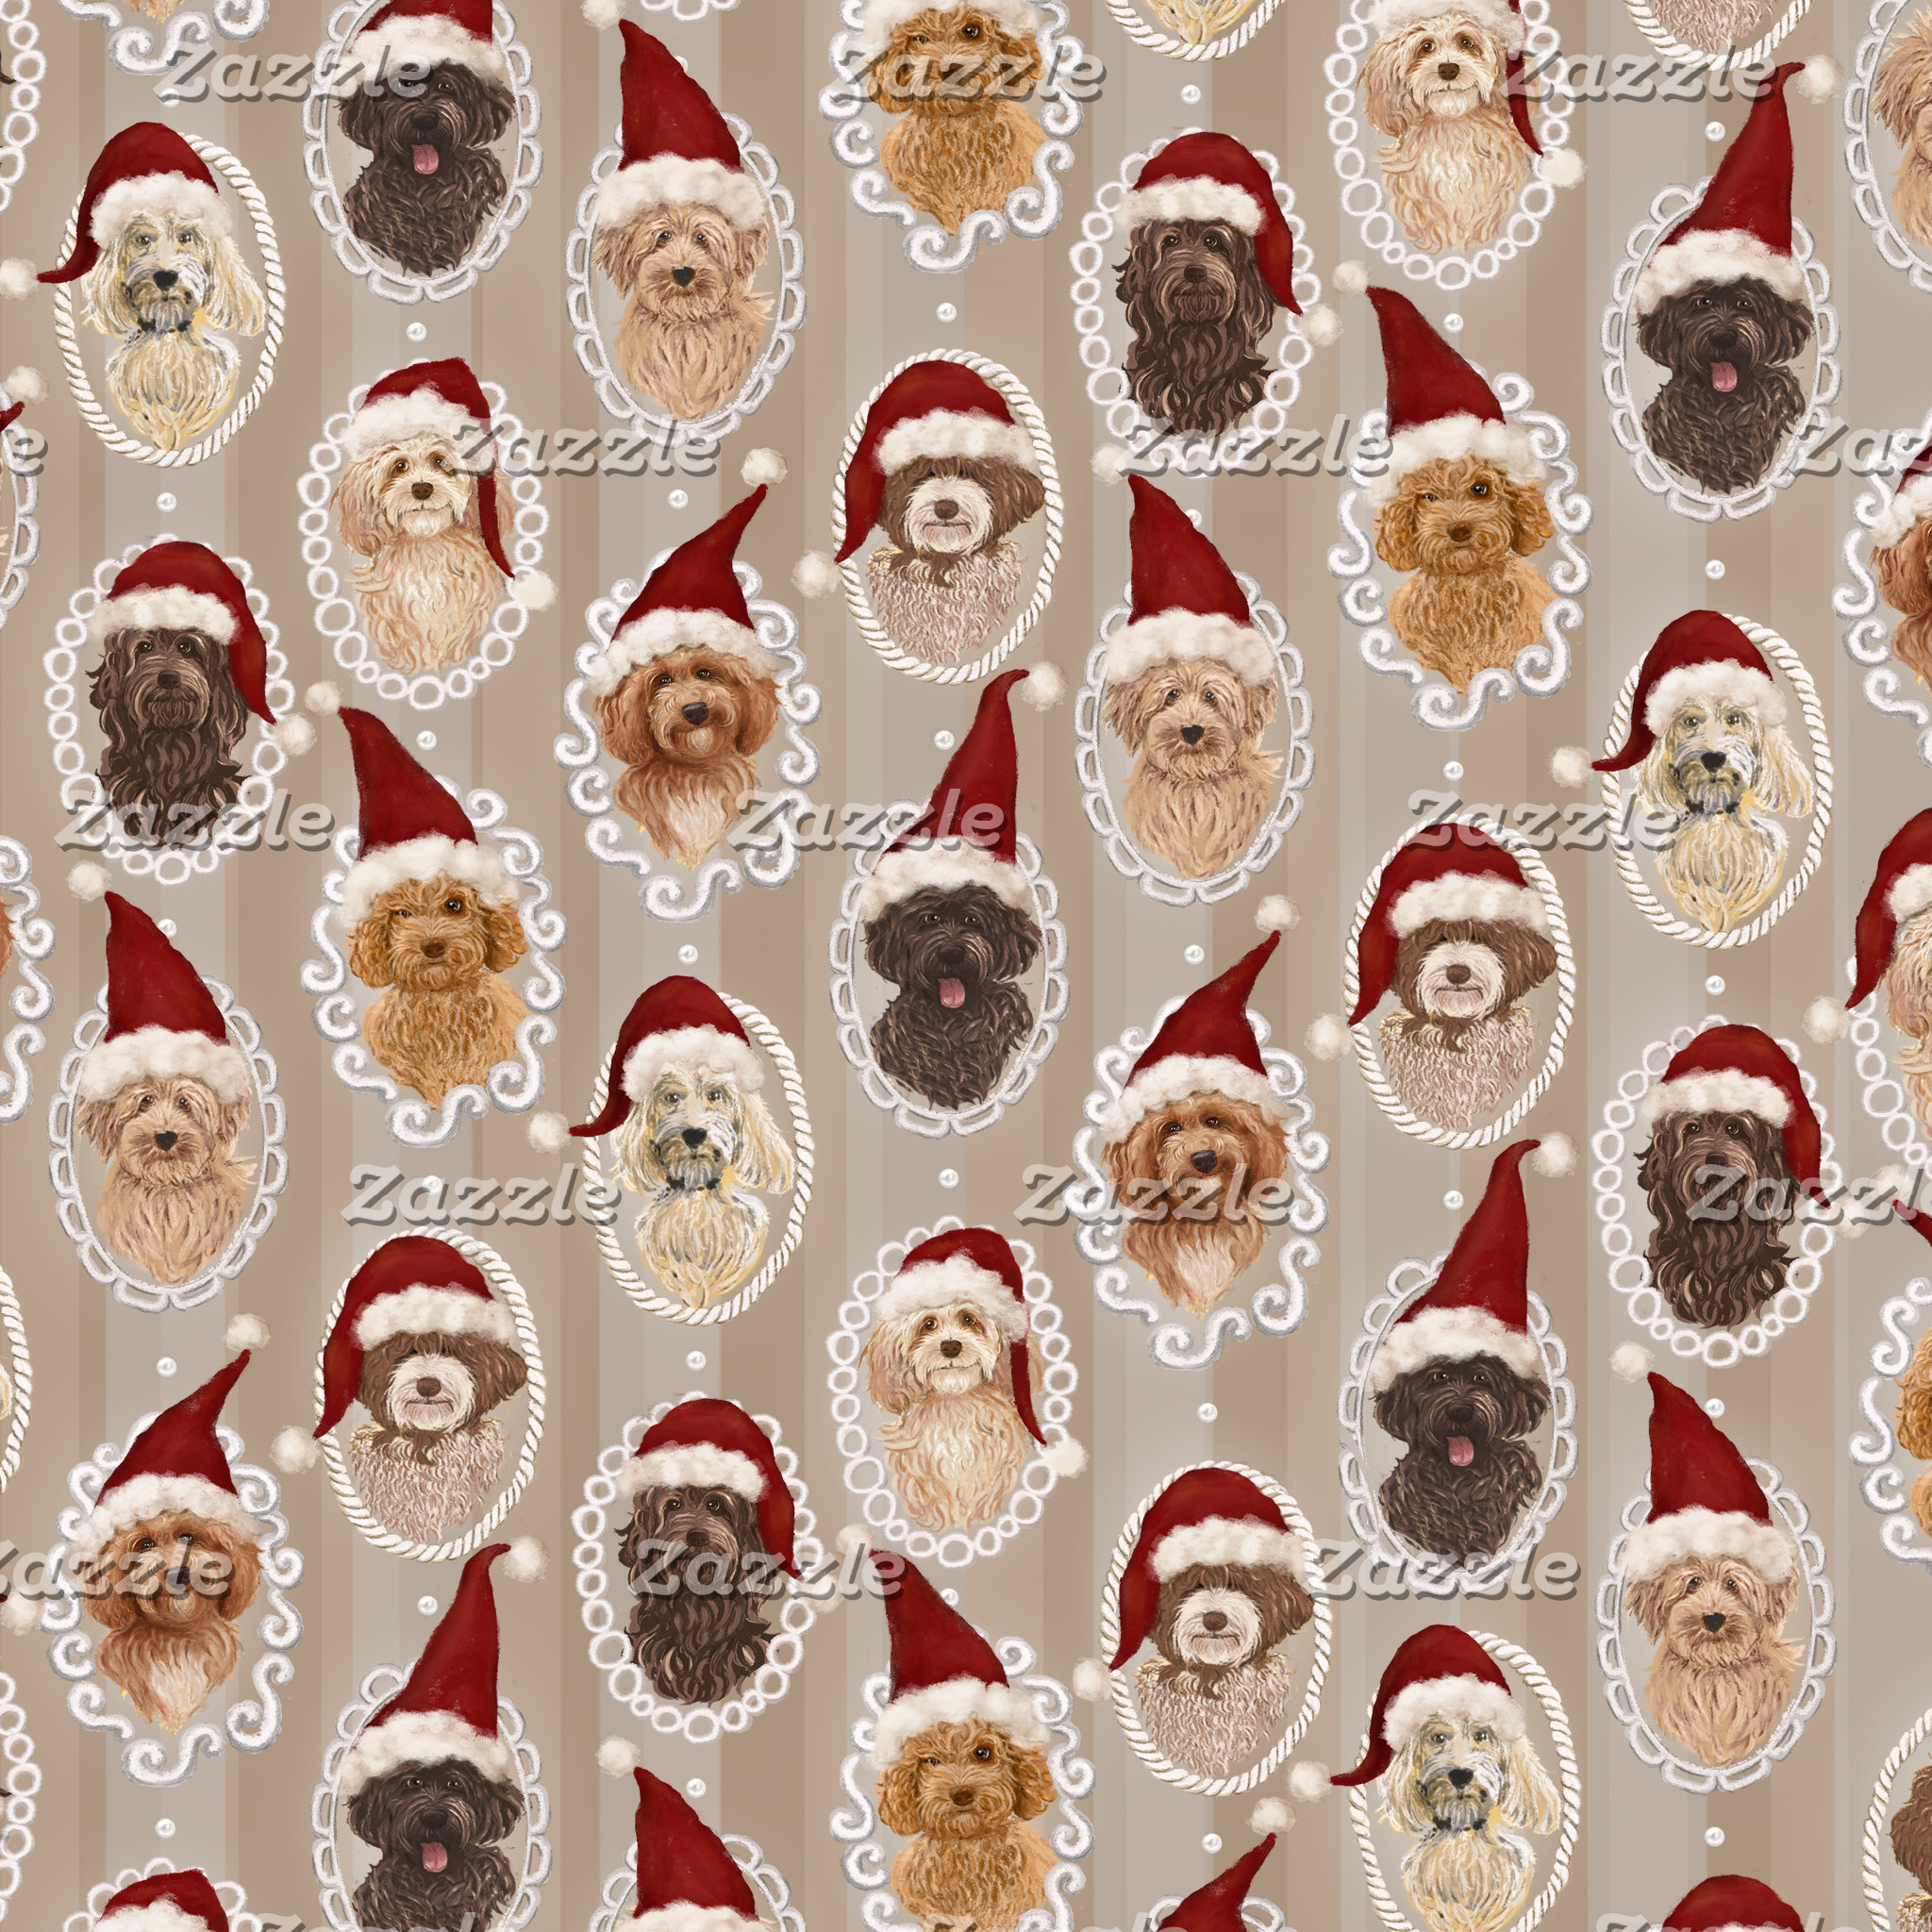 Christmas present ideas for pets and the dog lover